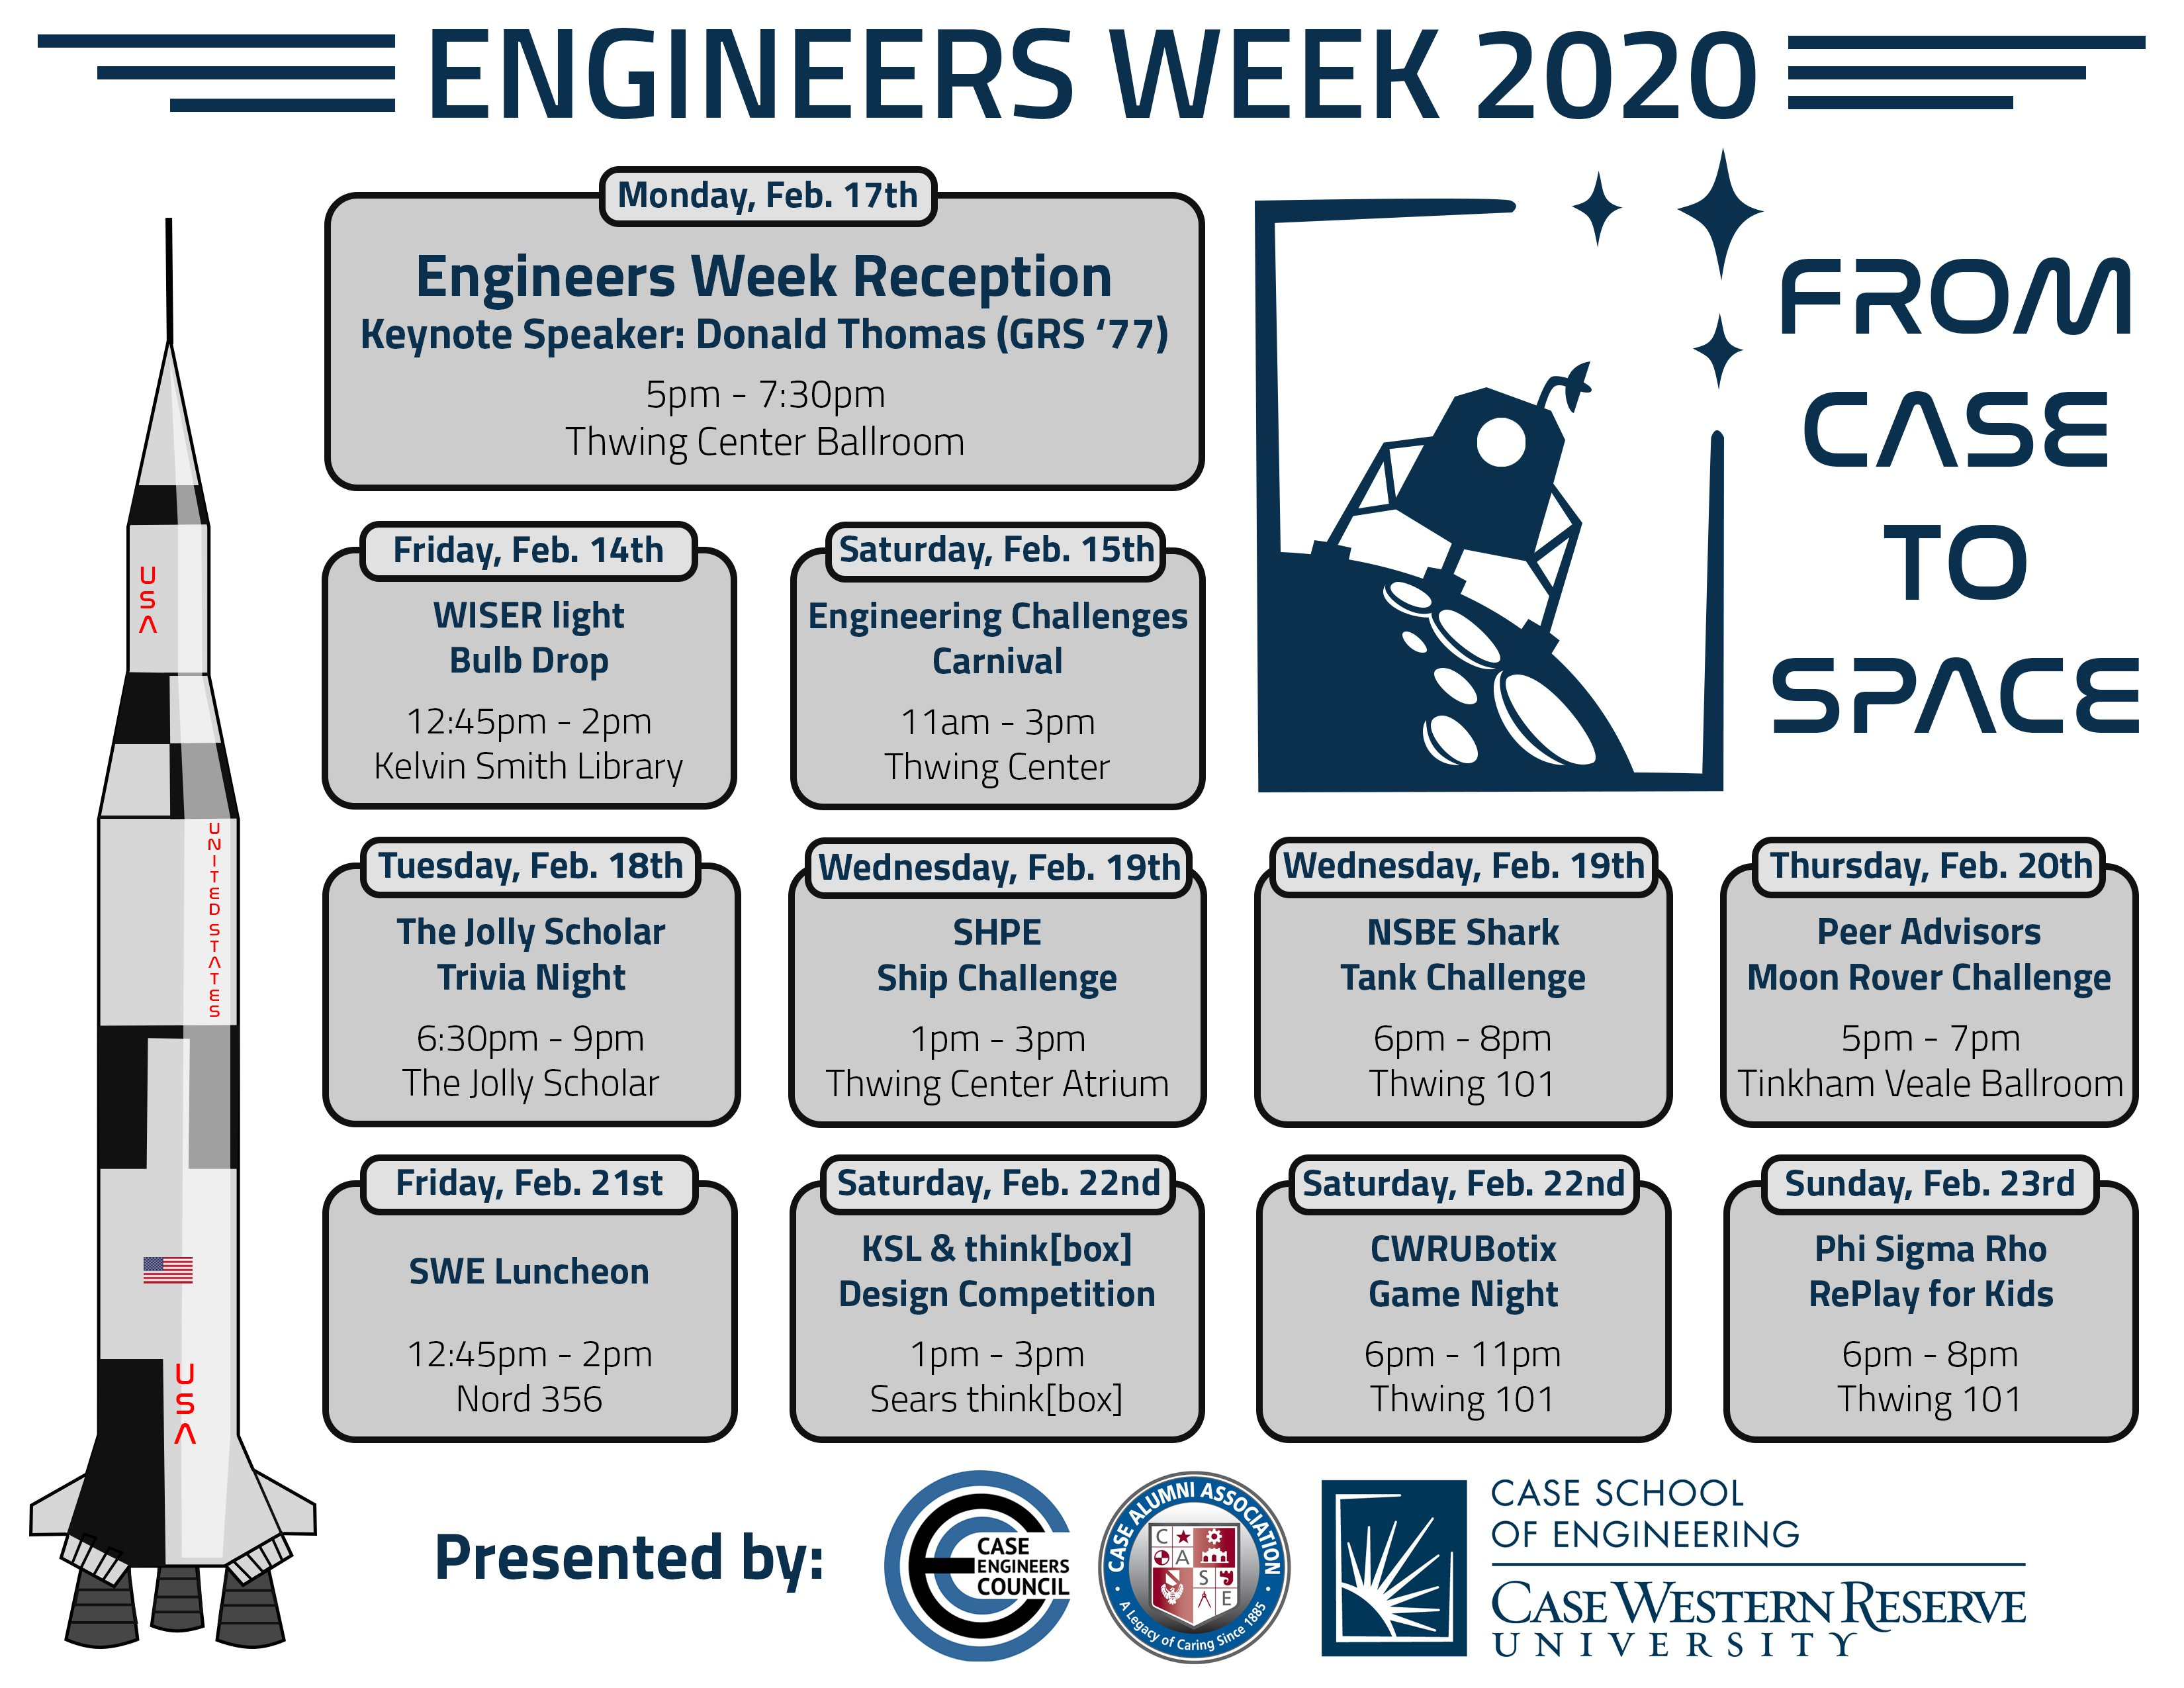 Calendar of events for E-Week 2020